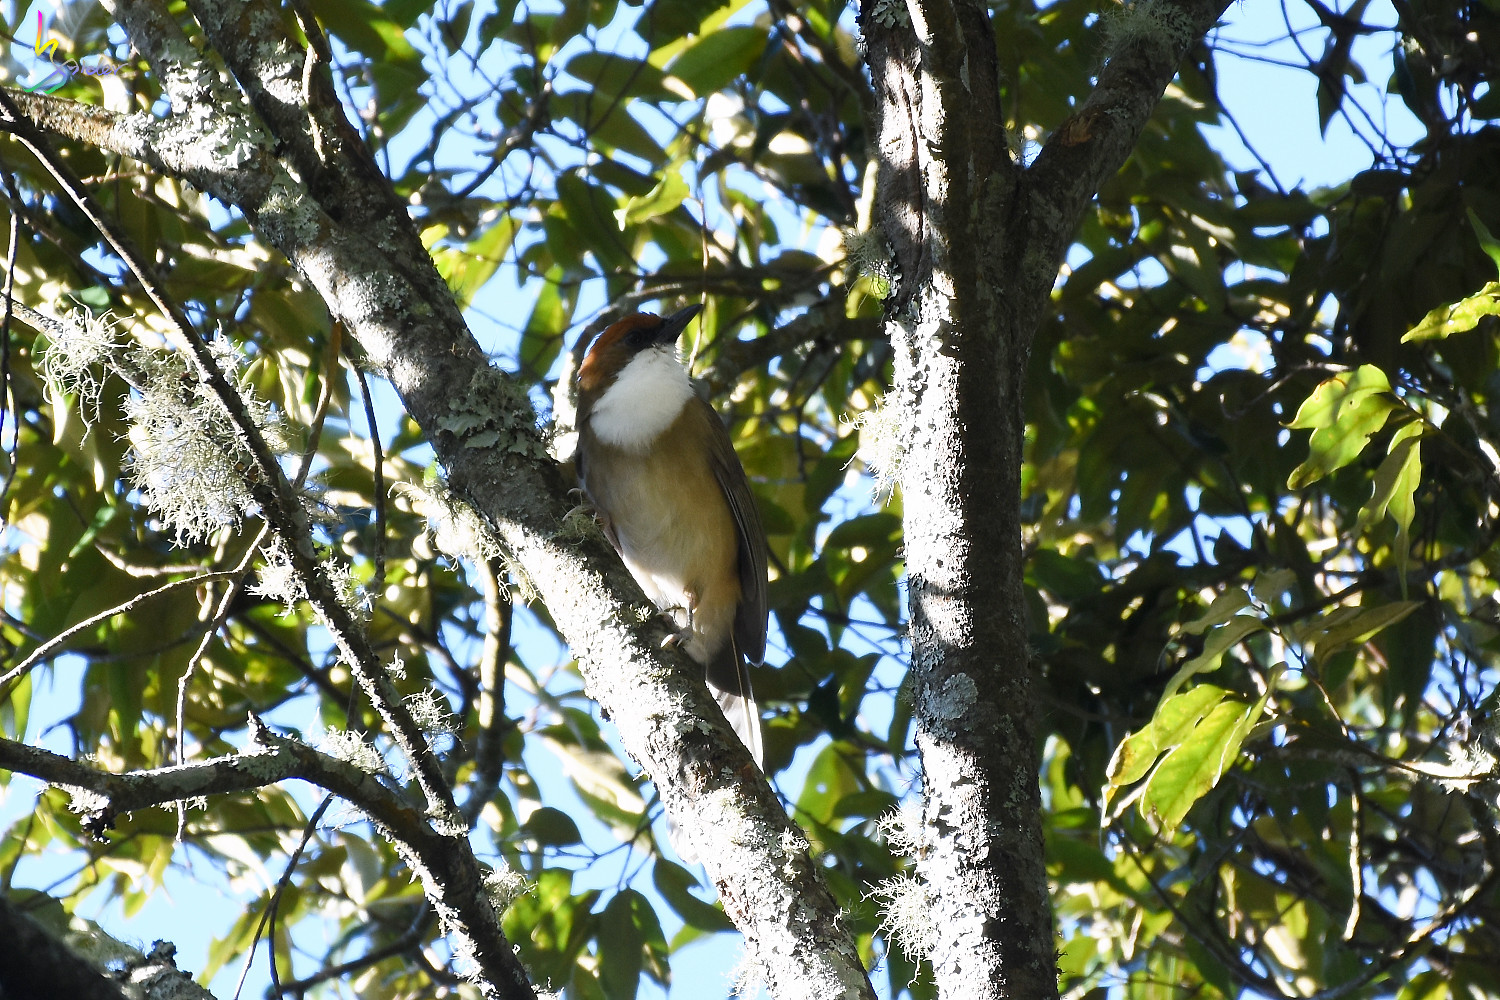 Rufous-crowned_Laughingthrush_5600